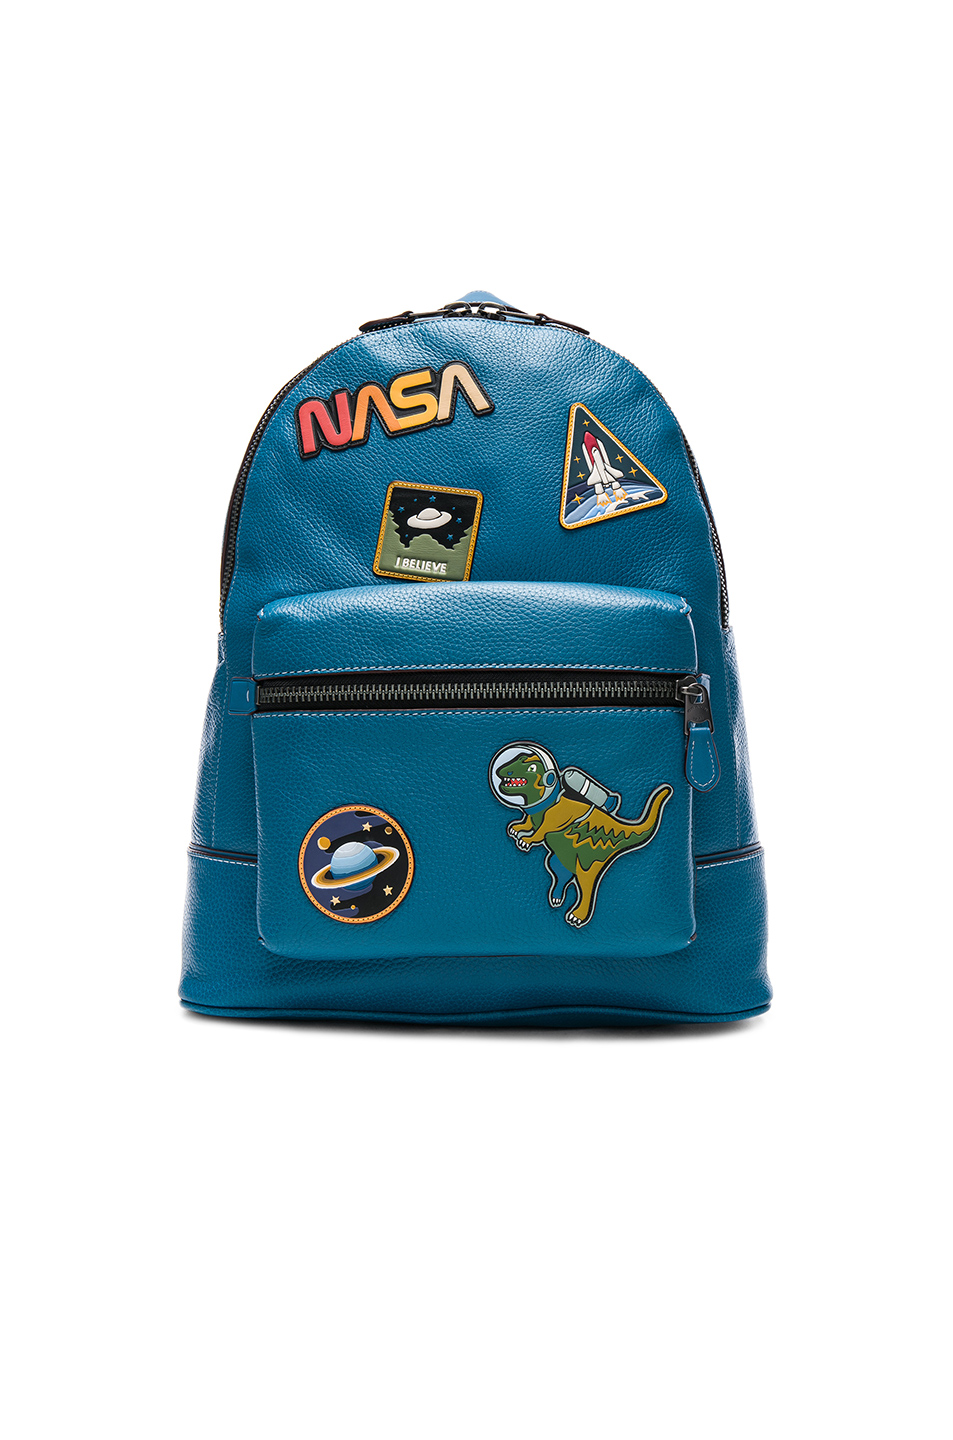 Coach 1941 NASA Embellished Backpack in Blue